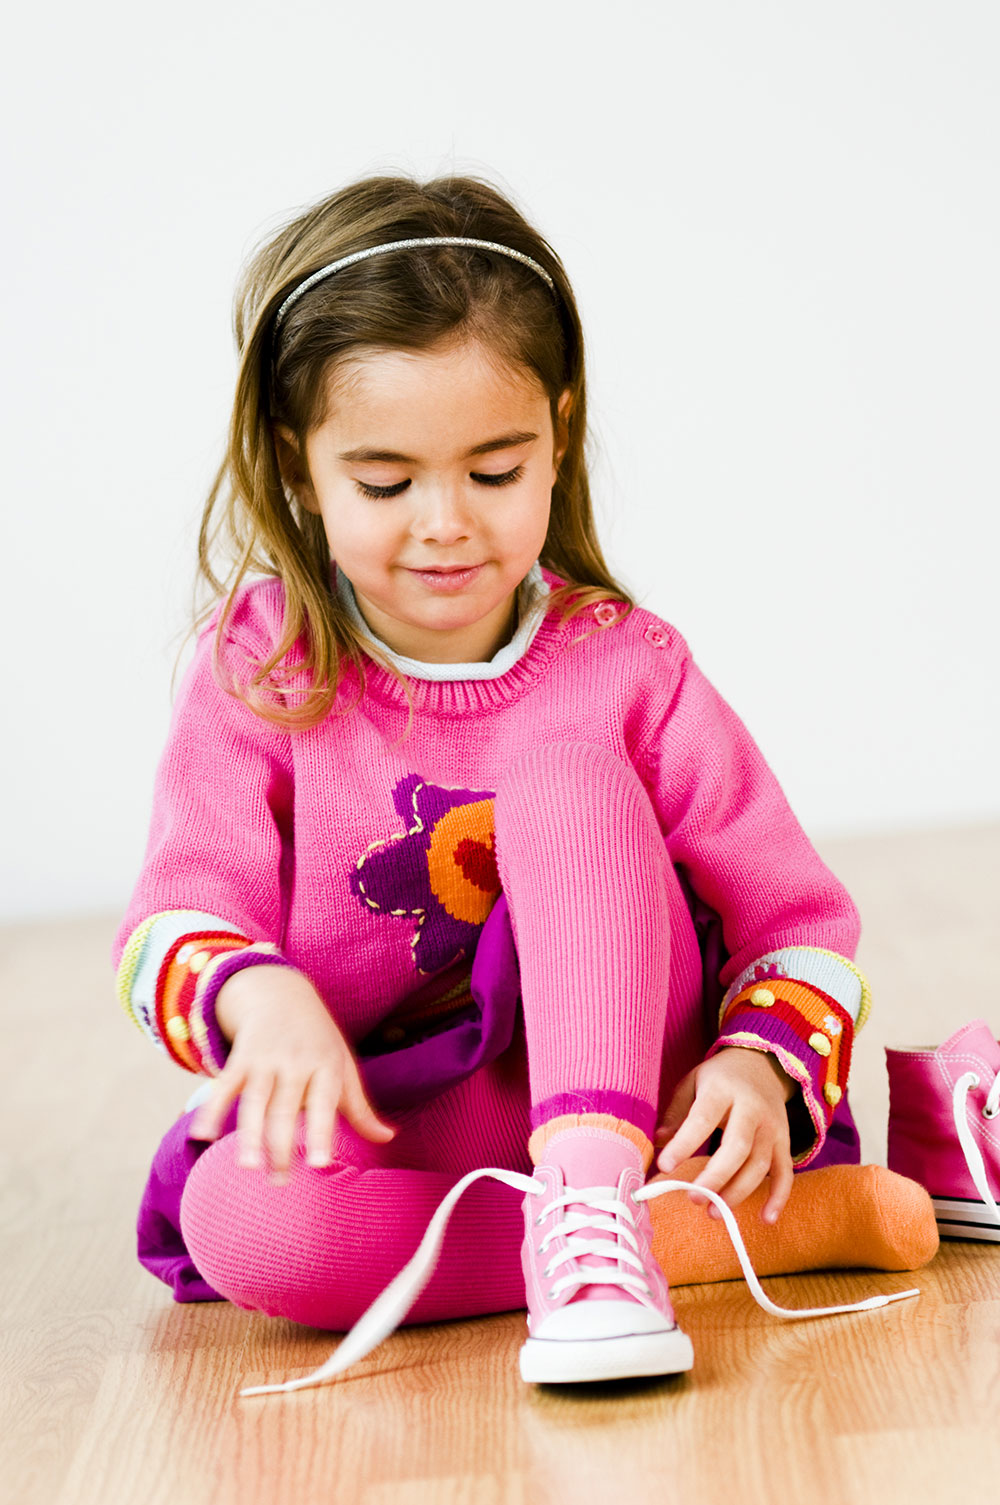 Do Kids Tie Their Shoes